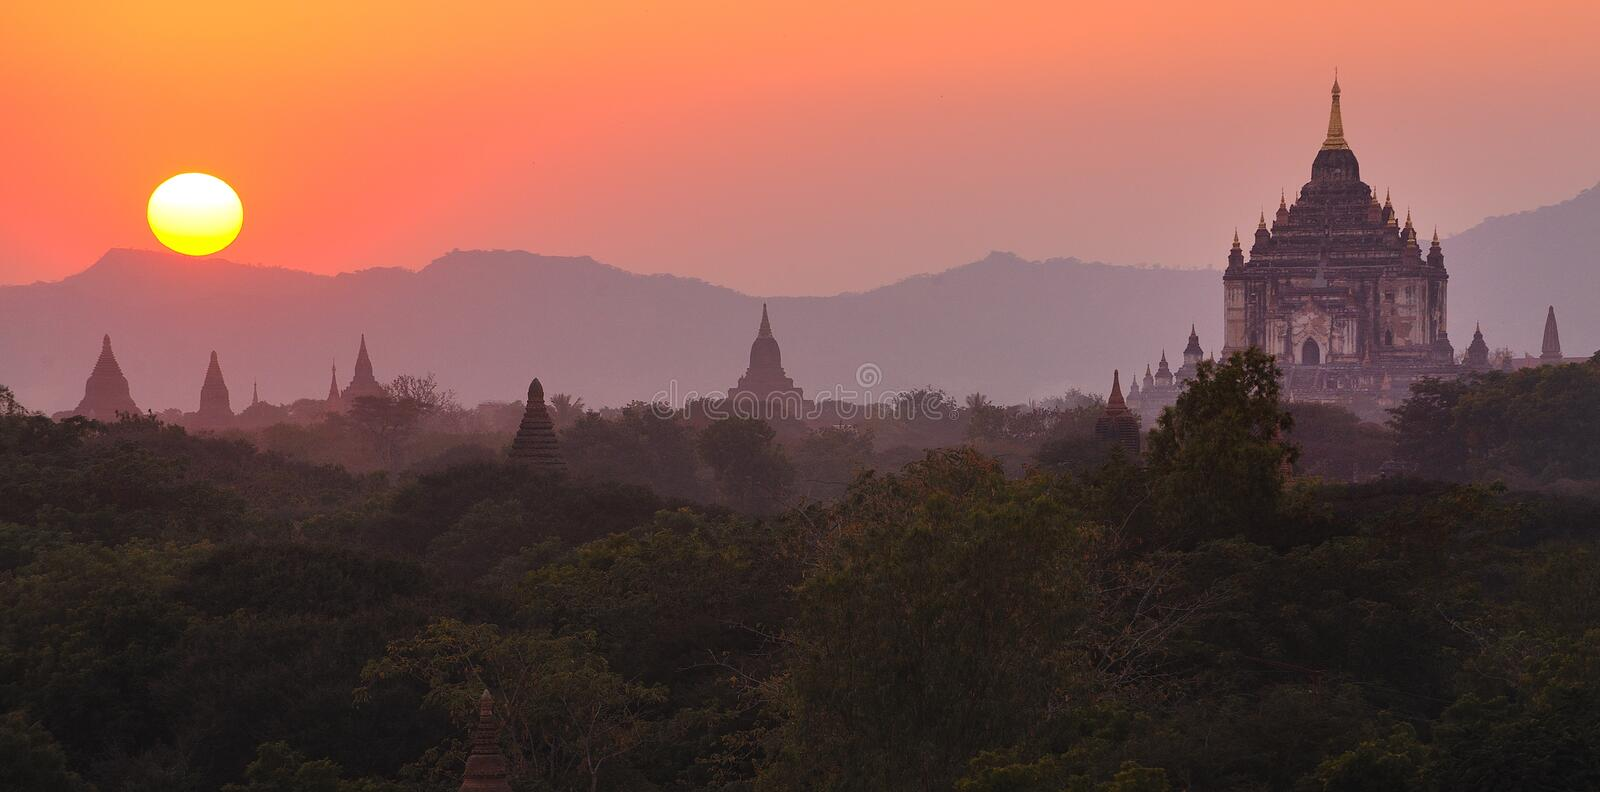 Sunsetting over bagan,myanmar(burma) royalty free stock photos